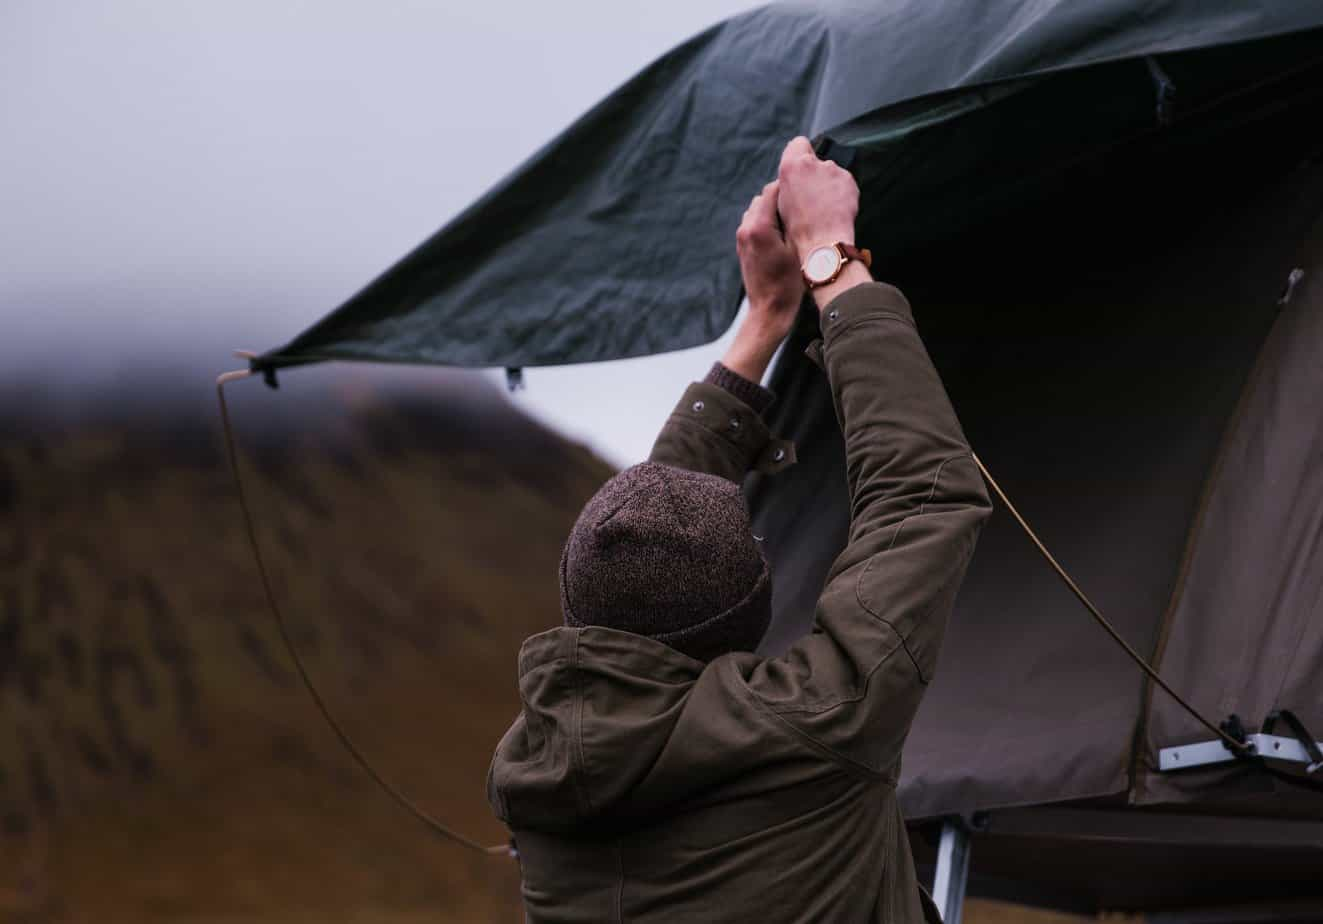 Another feature is that polyester can withstand sunlight more than nylon where sun rays can cause fading and deterioration to nylon tents over time. & The Ultimate Guide to Buying a Tent (Comes with a Quiz)